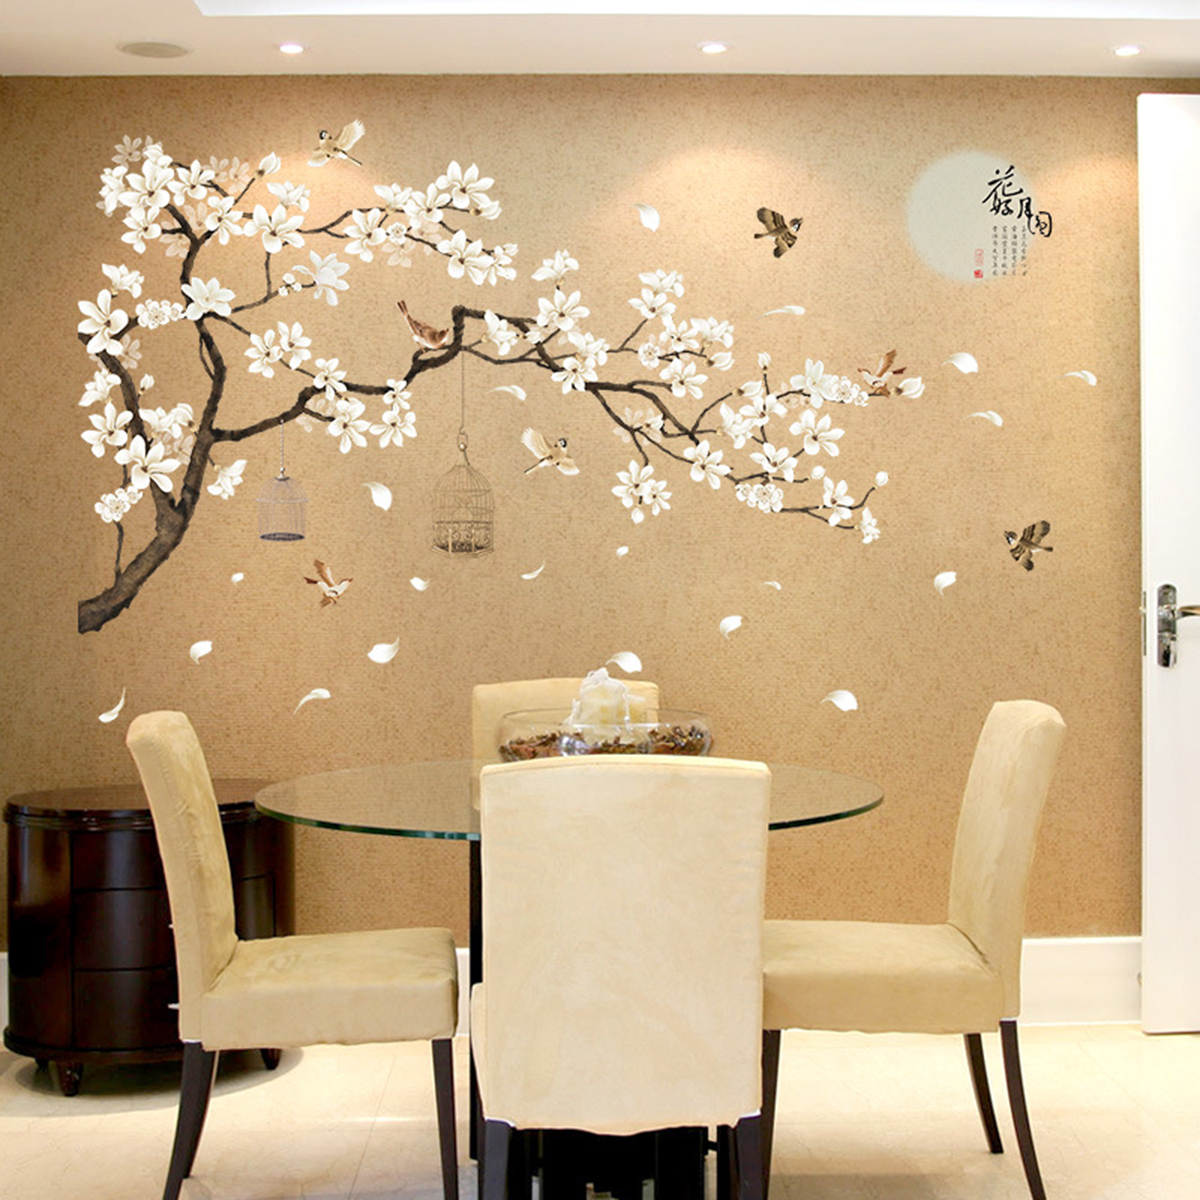 Large Cherry Blossom Flower Birds Tree Wall Stickers Art Decal Home Decor DIY